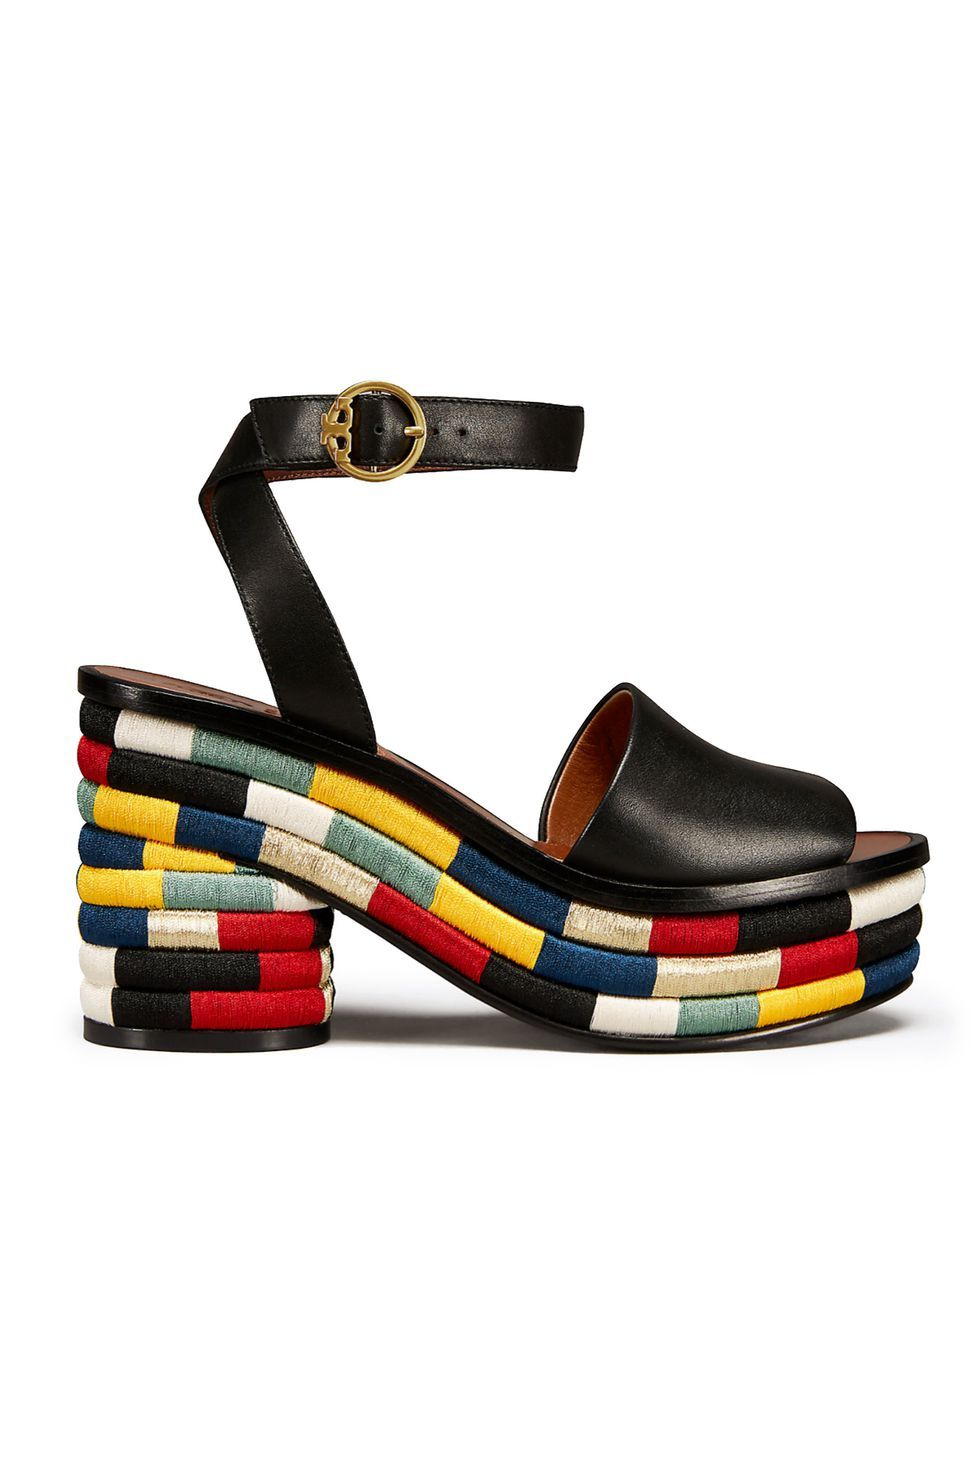 7002d969ca9 tory burch Best Summer Sandals 2018 - Trendy Sandals and Shoes for Summer